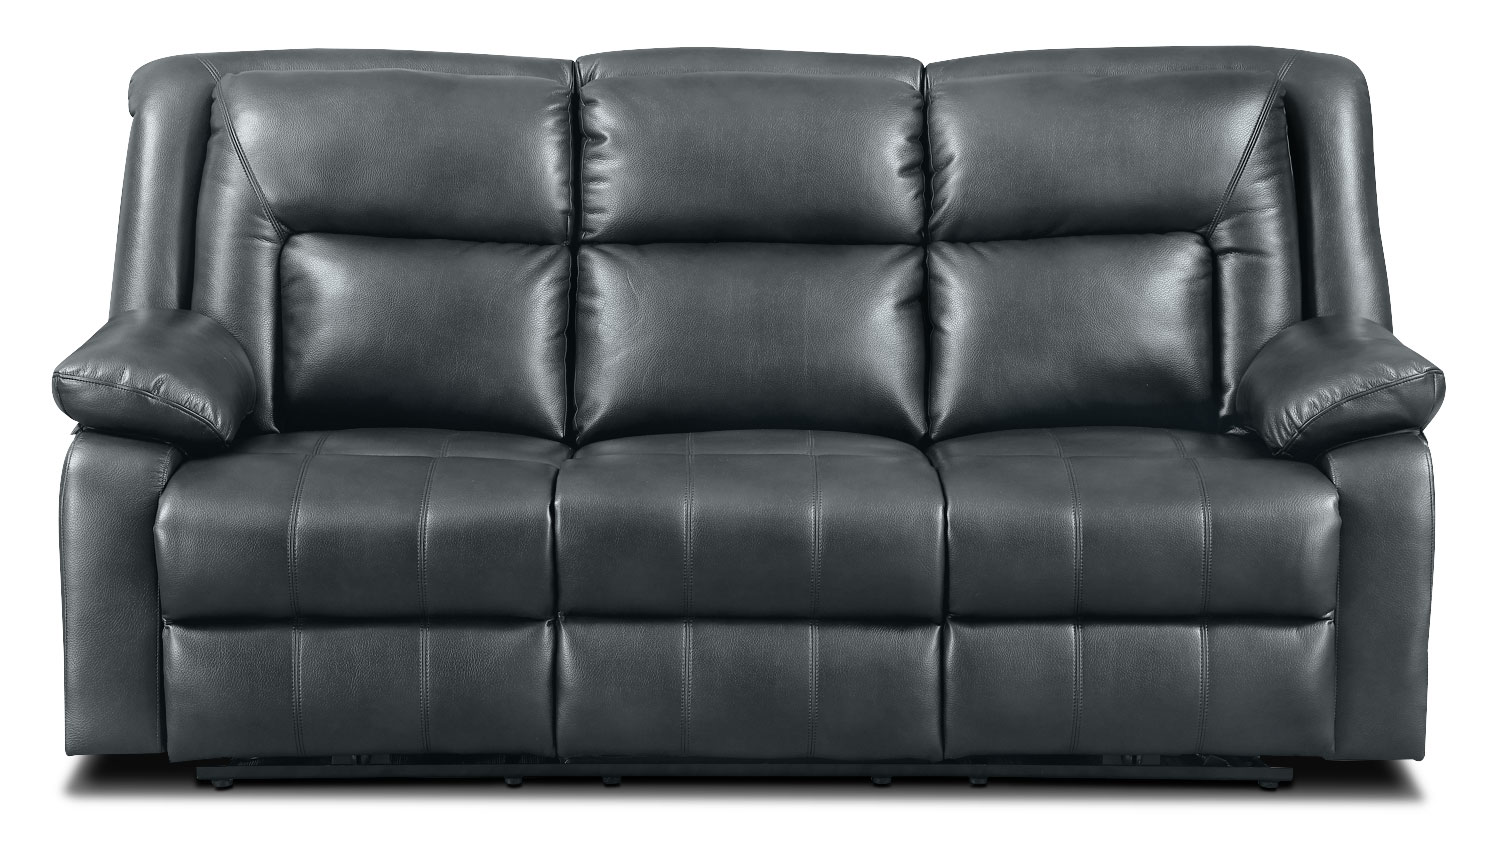 Blane Leather-Look Fabric Power Reclining Sofa – Graphite